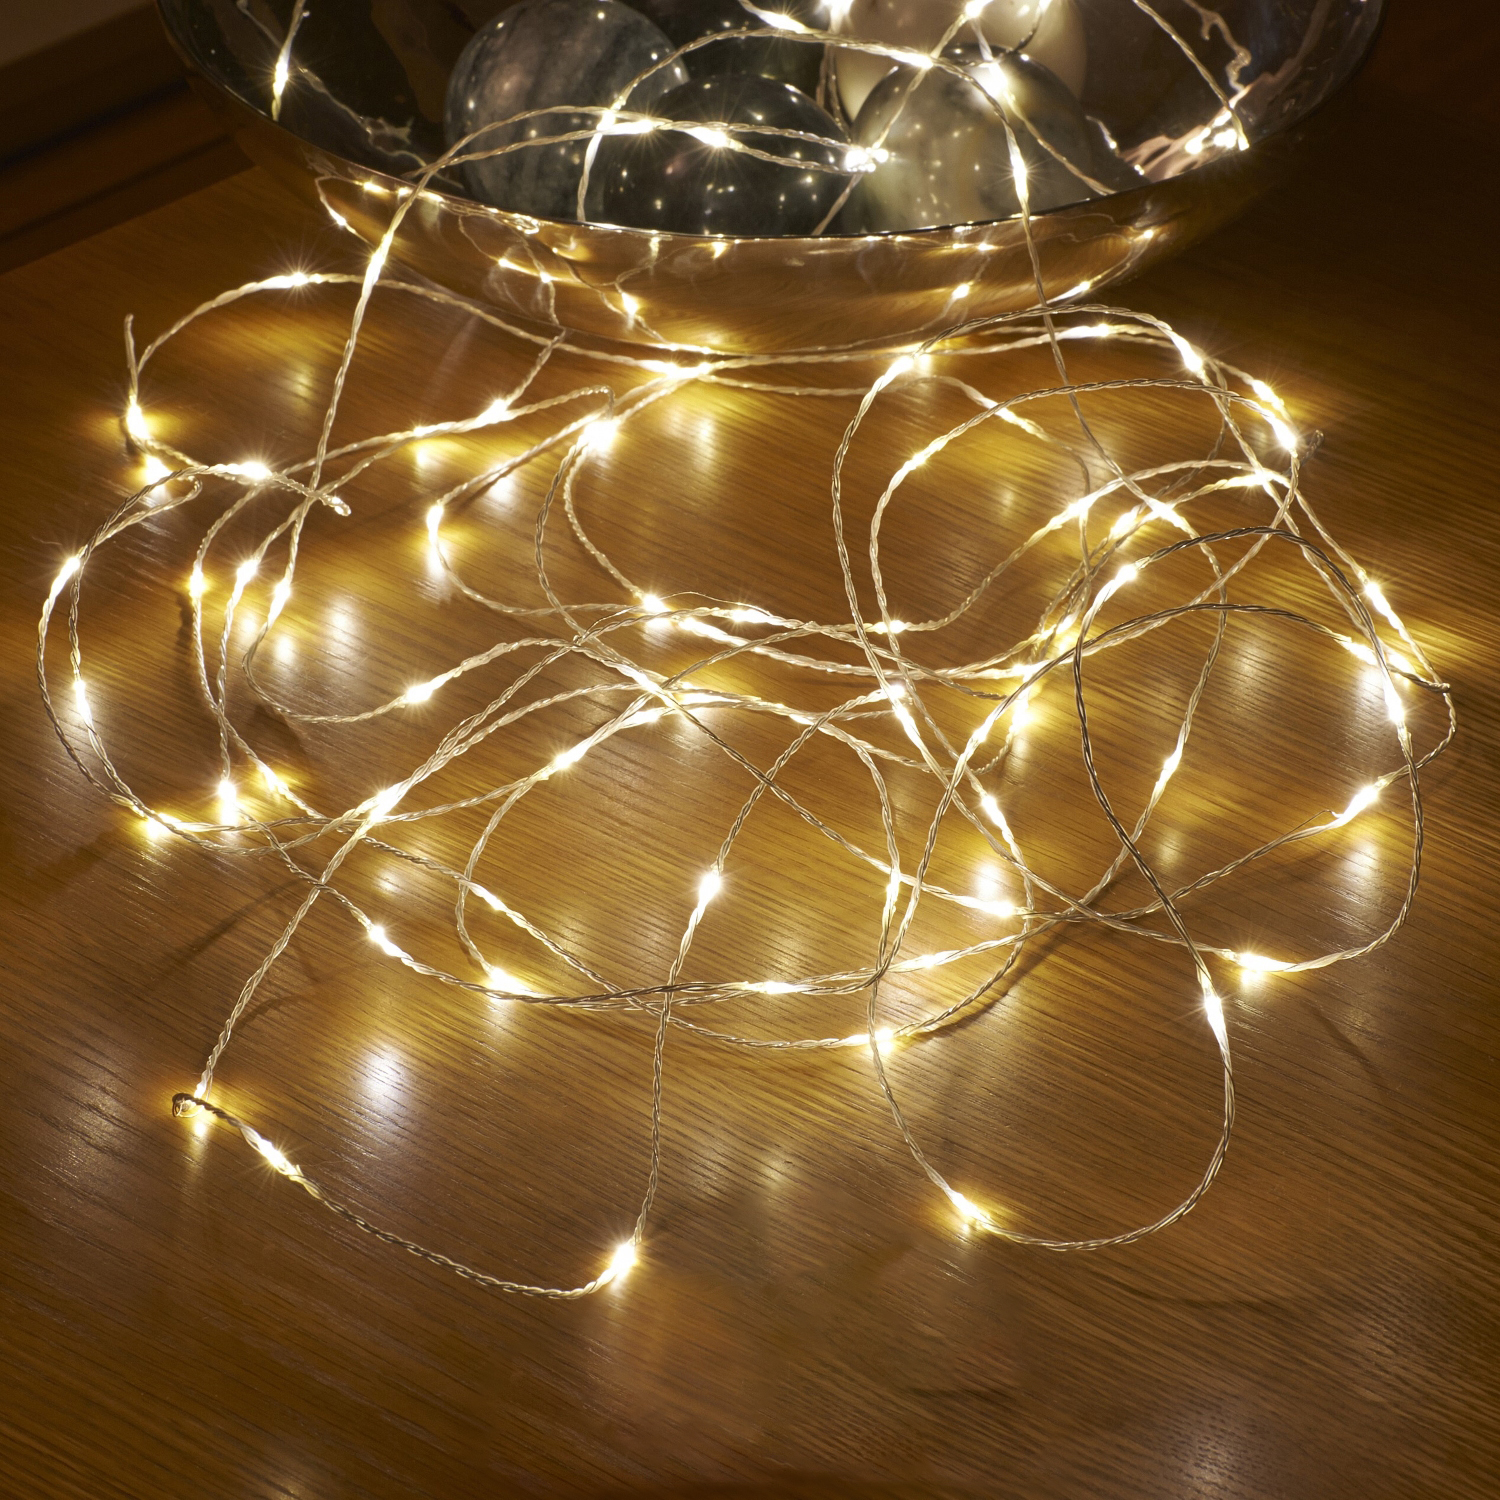 Led String Lights With Battery : Micro LED String Lights - Battery Operated - Remote Controlled - Outdoor - 5M - Auraglow LED ...